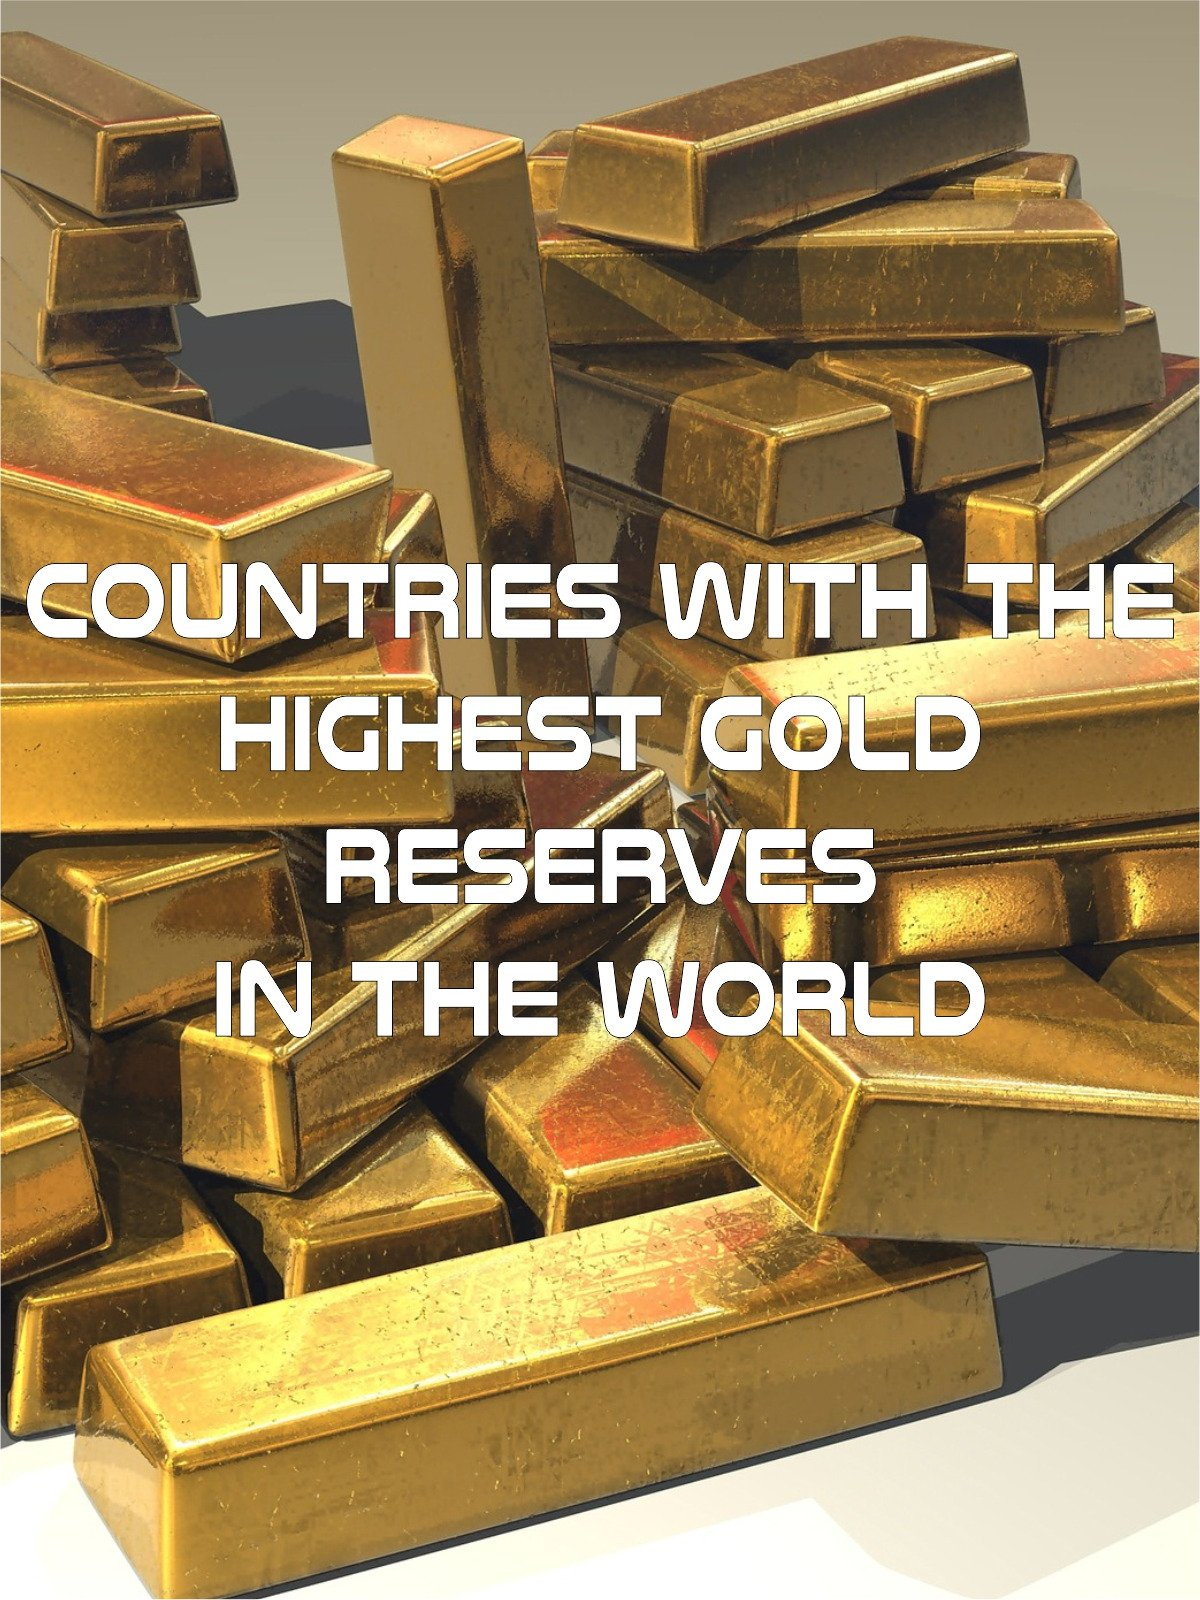 Countries With the Highest Gold Reserves in the World